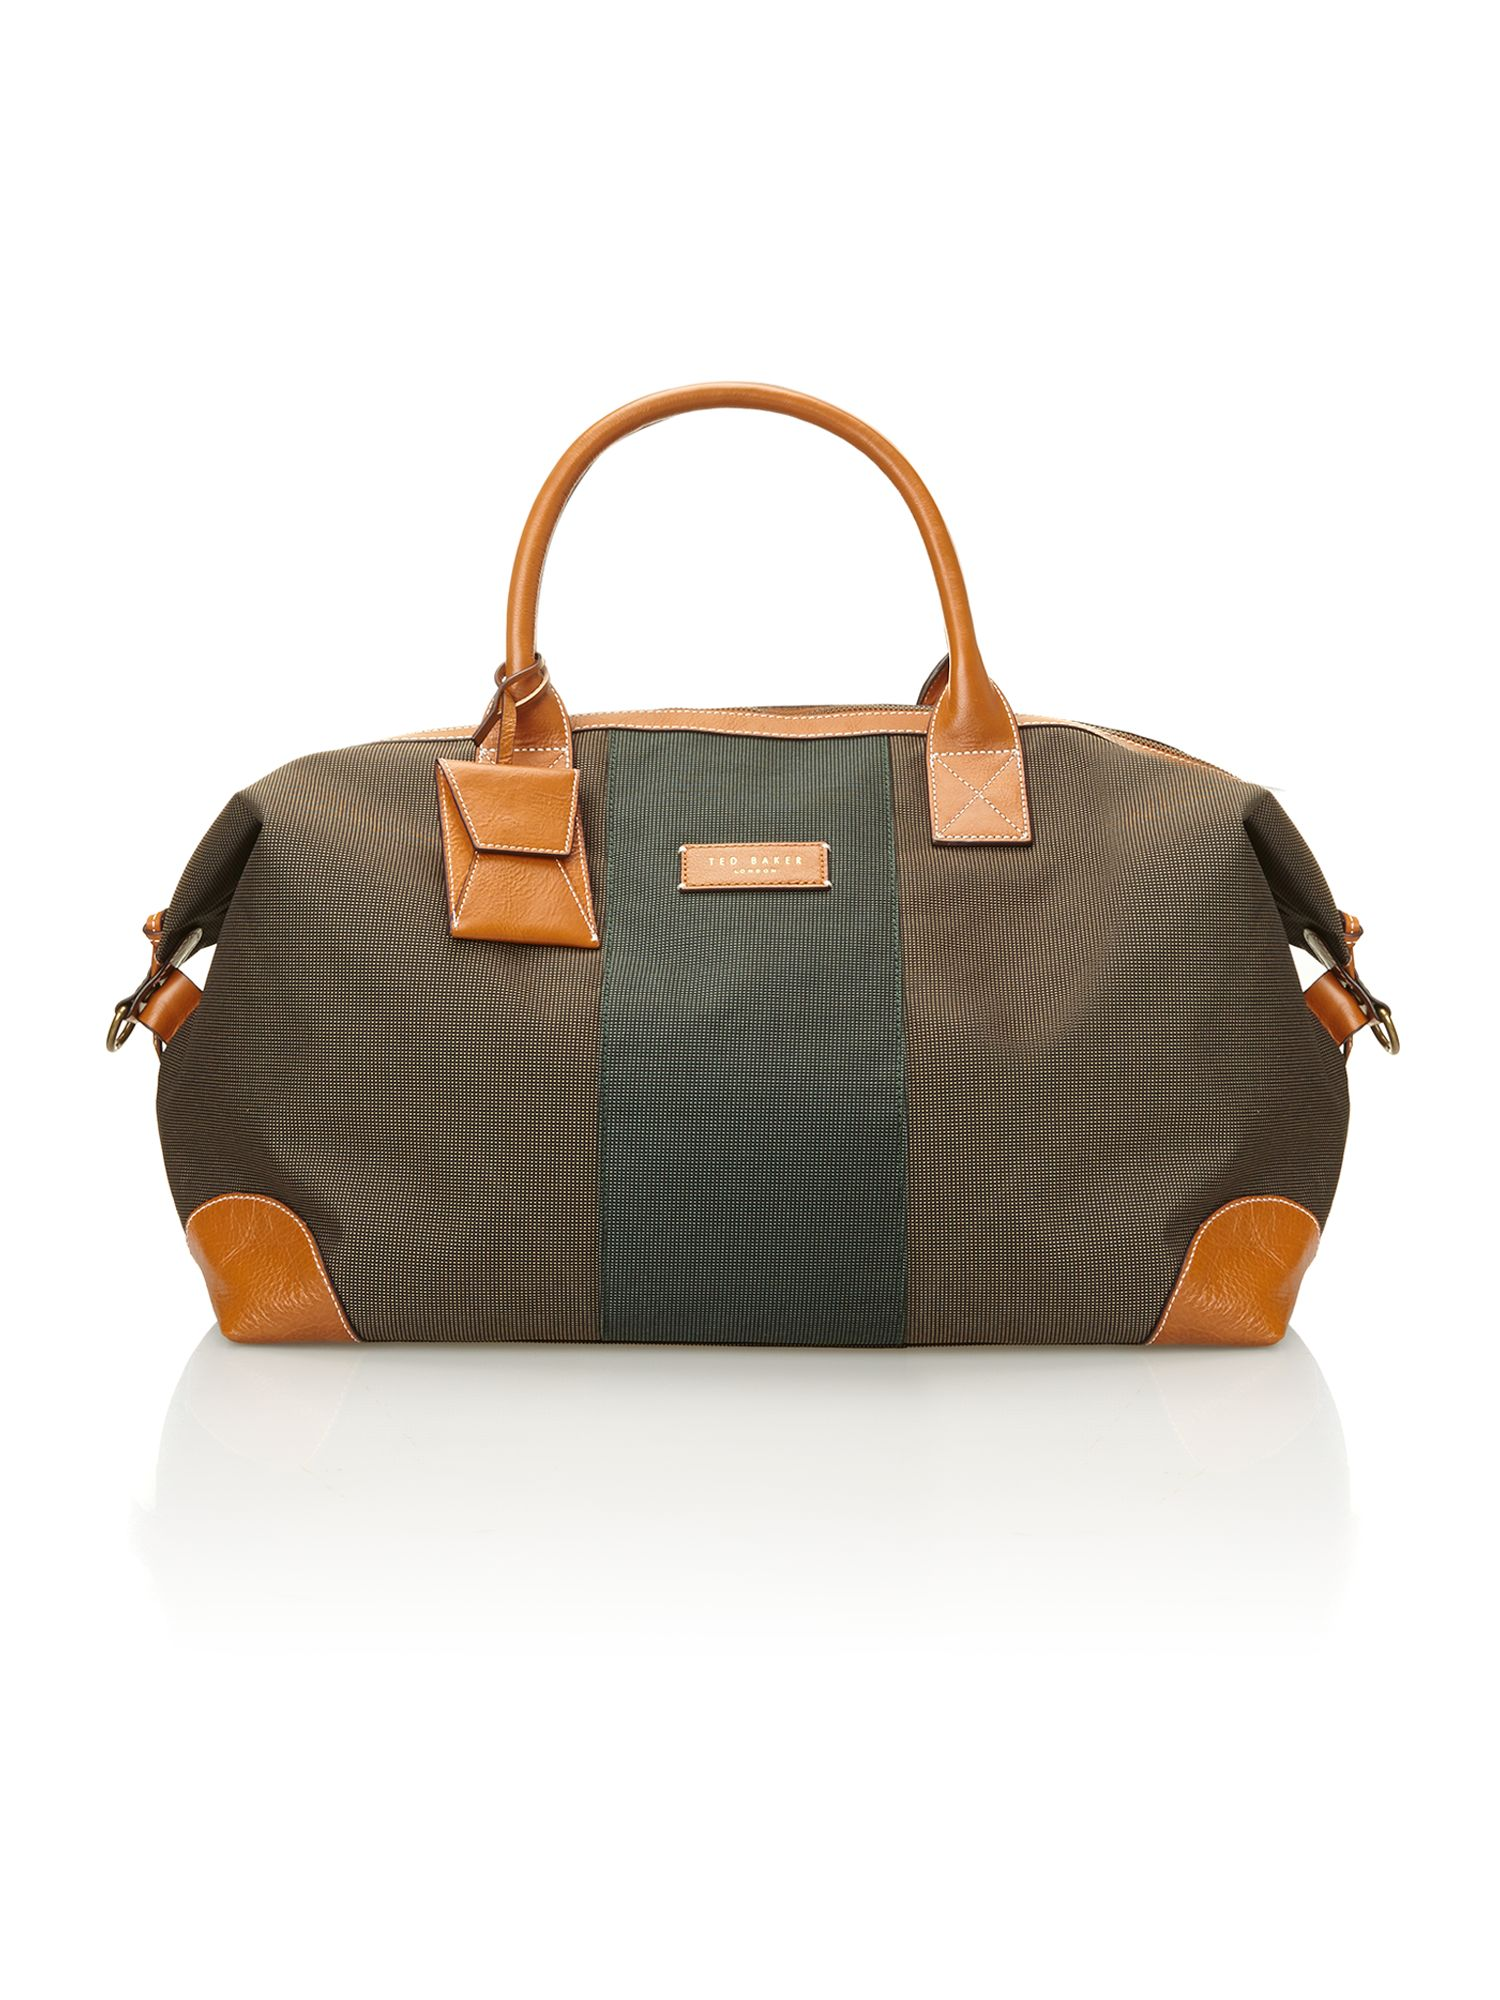 Stripe nylon and leather holdall bag